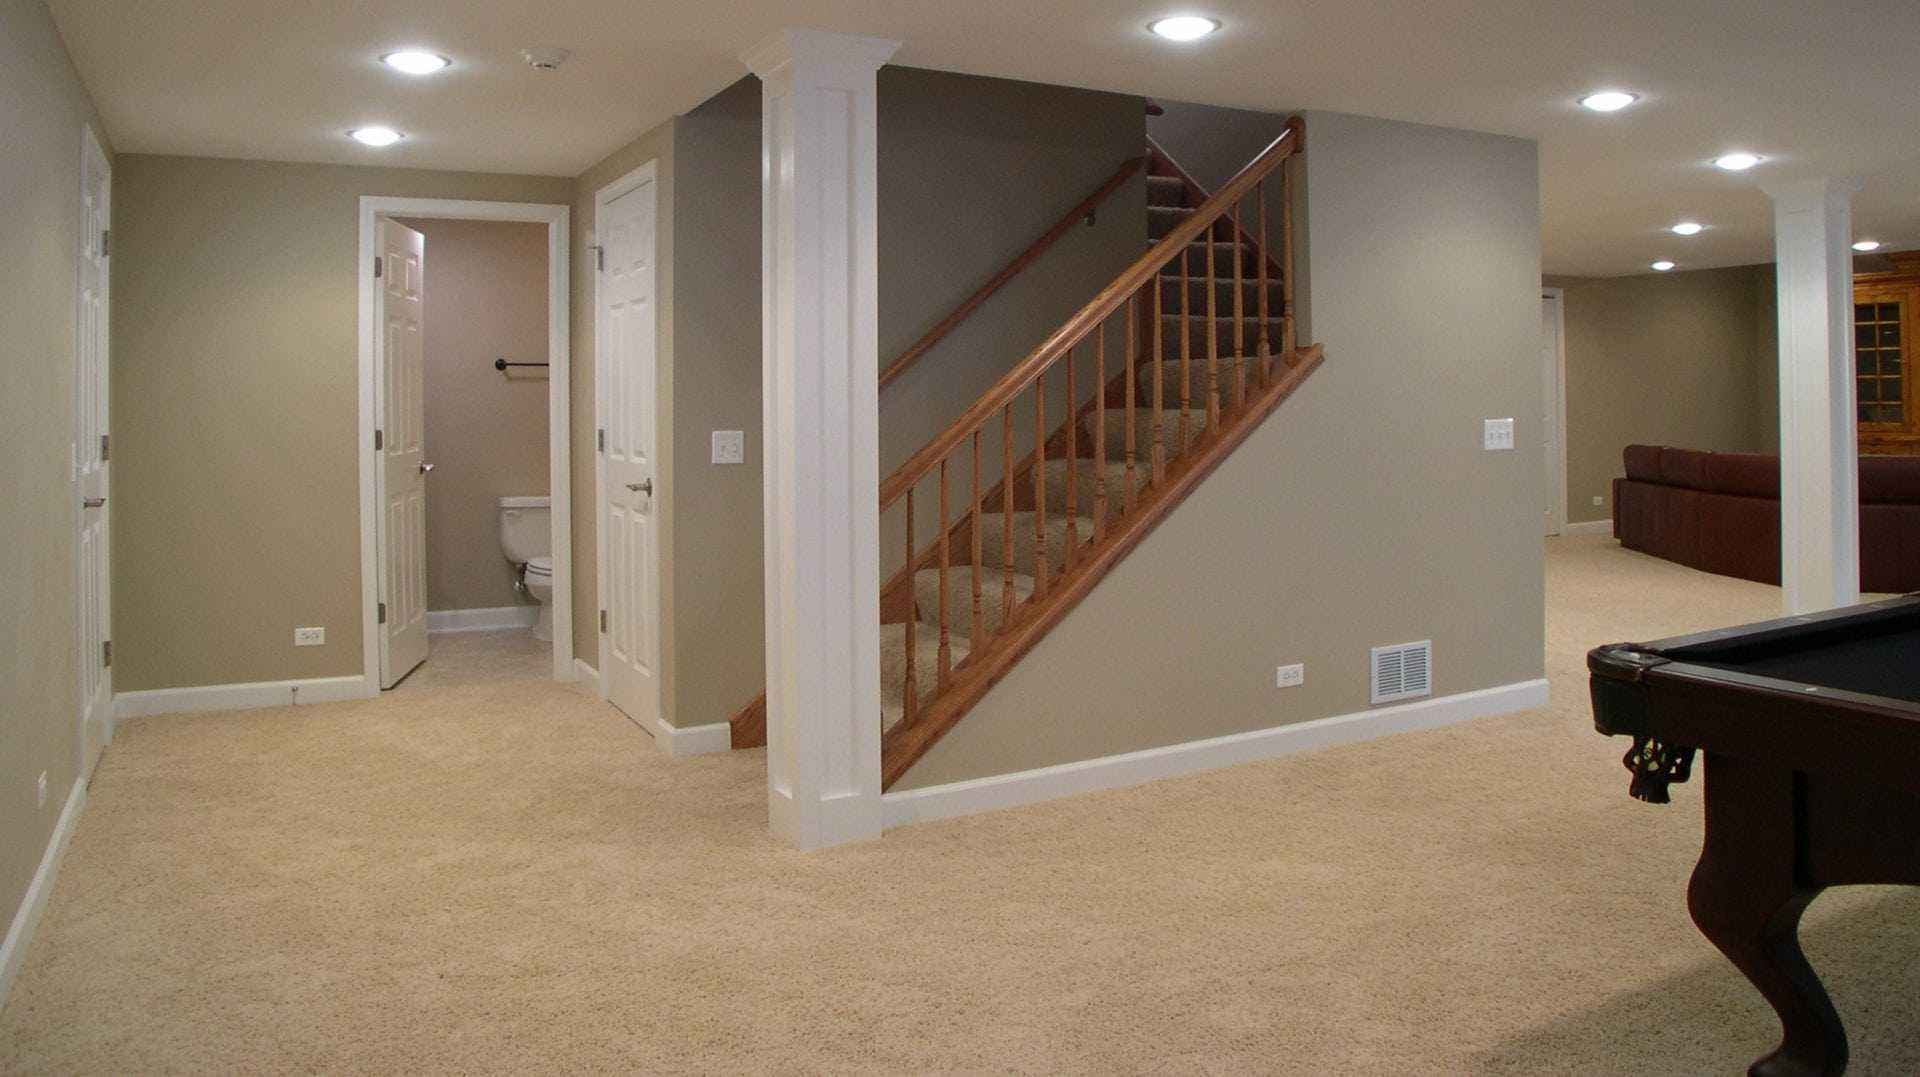 Chicago Basement Remodeling fred home remodeling contractors chicago, kitchen & bathroom